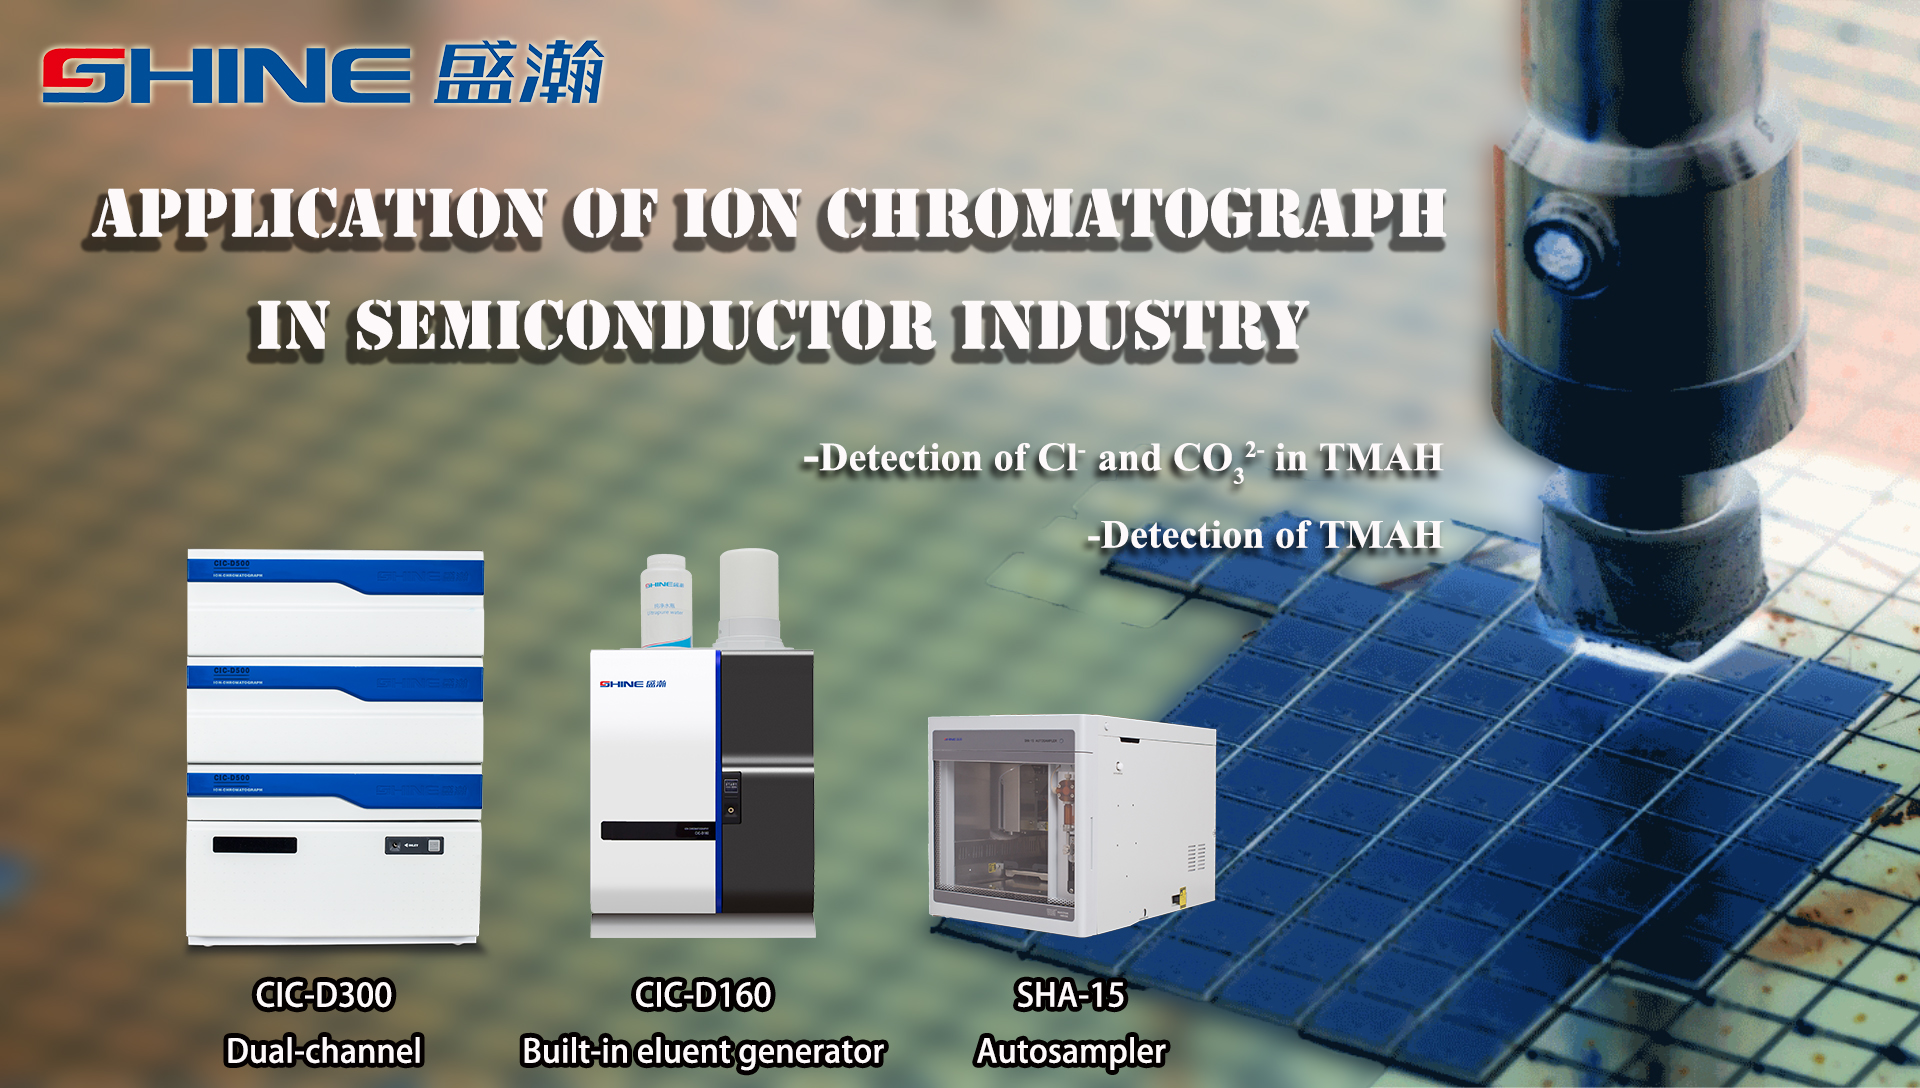 Application of Ion Chromatography in Semiconductor Industry